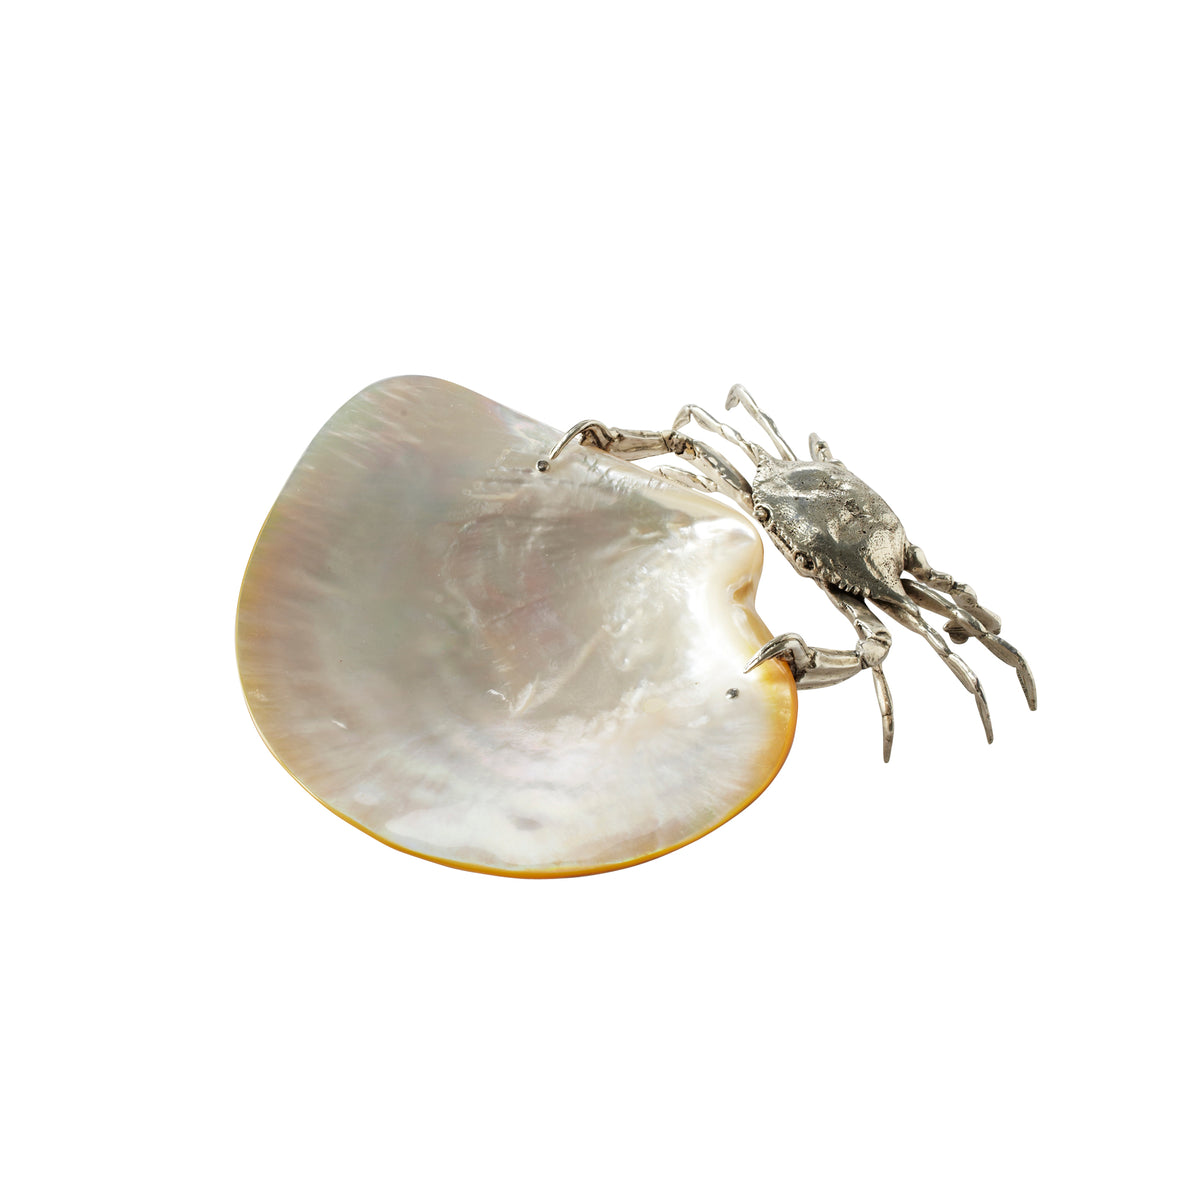 Crab with Mother-of-Pearl Shell